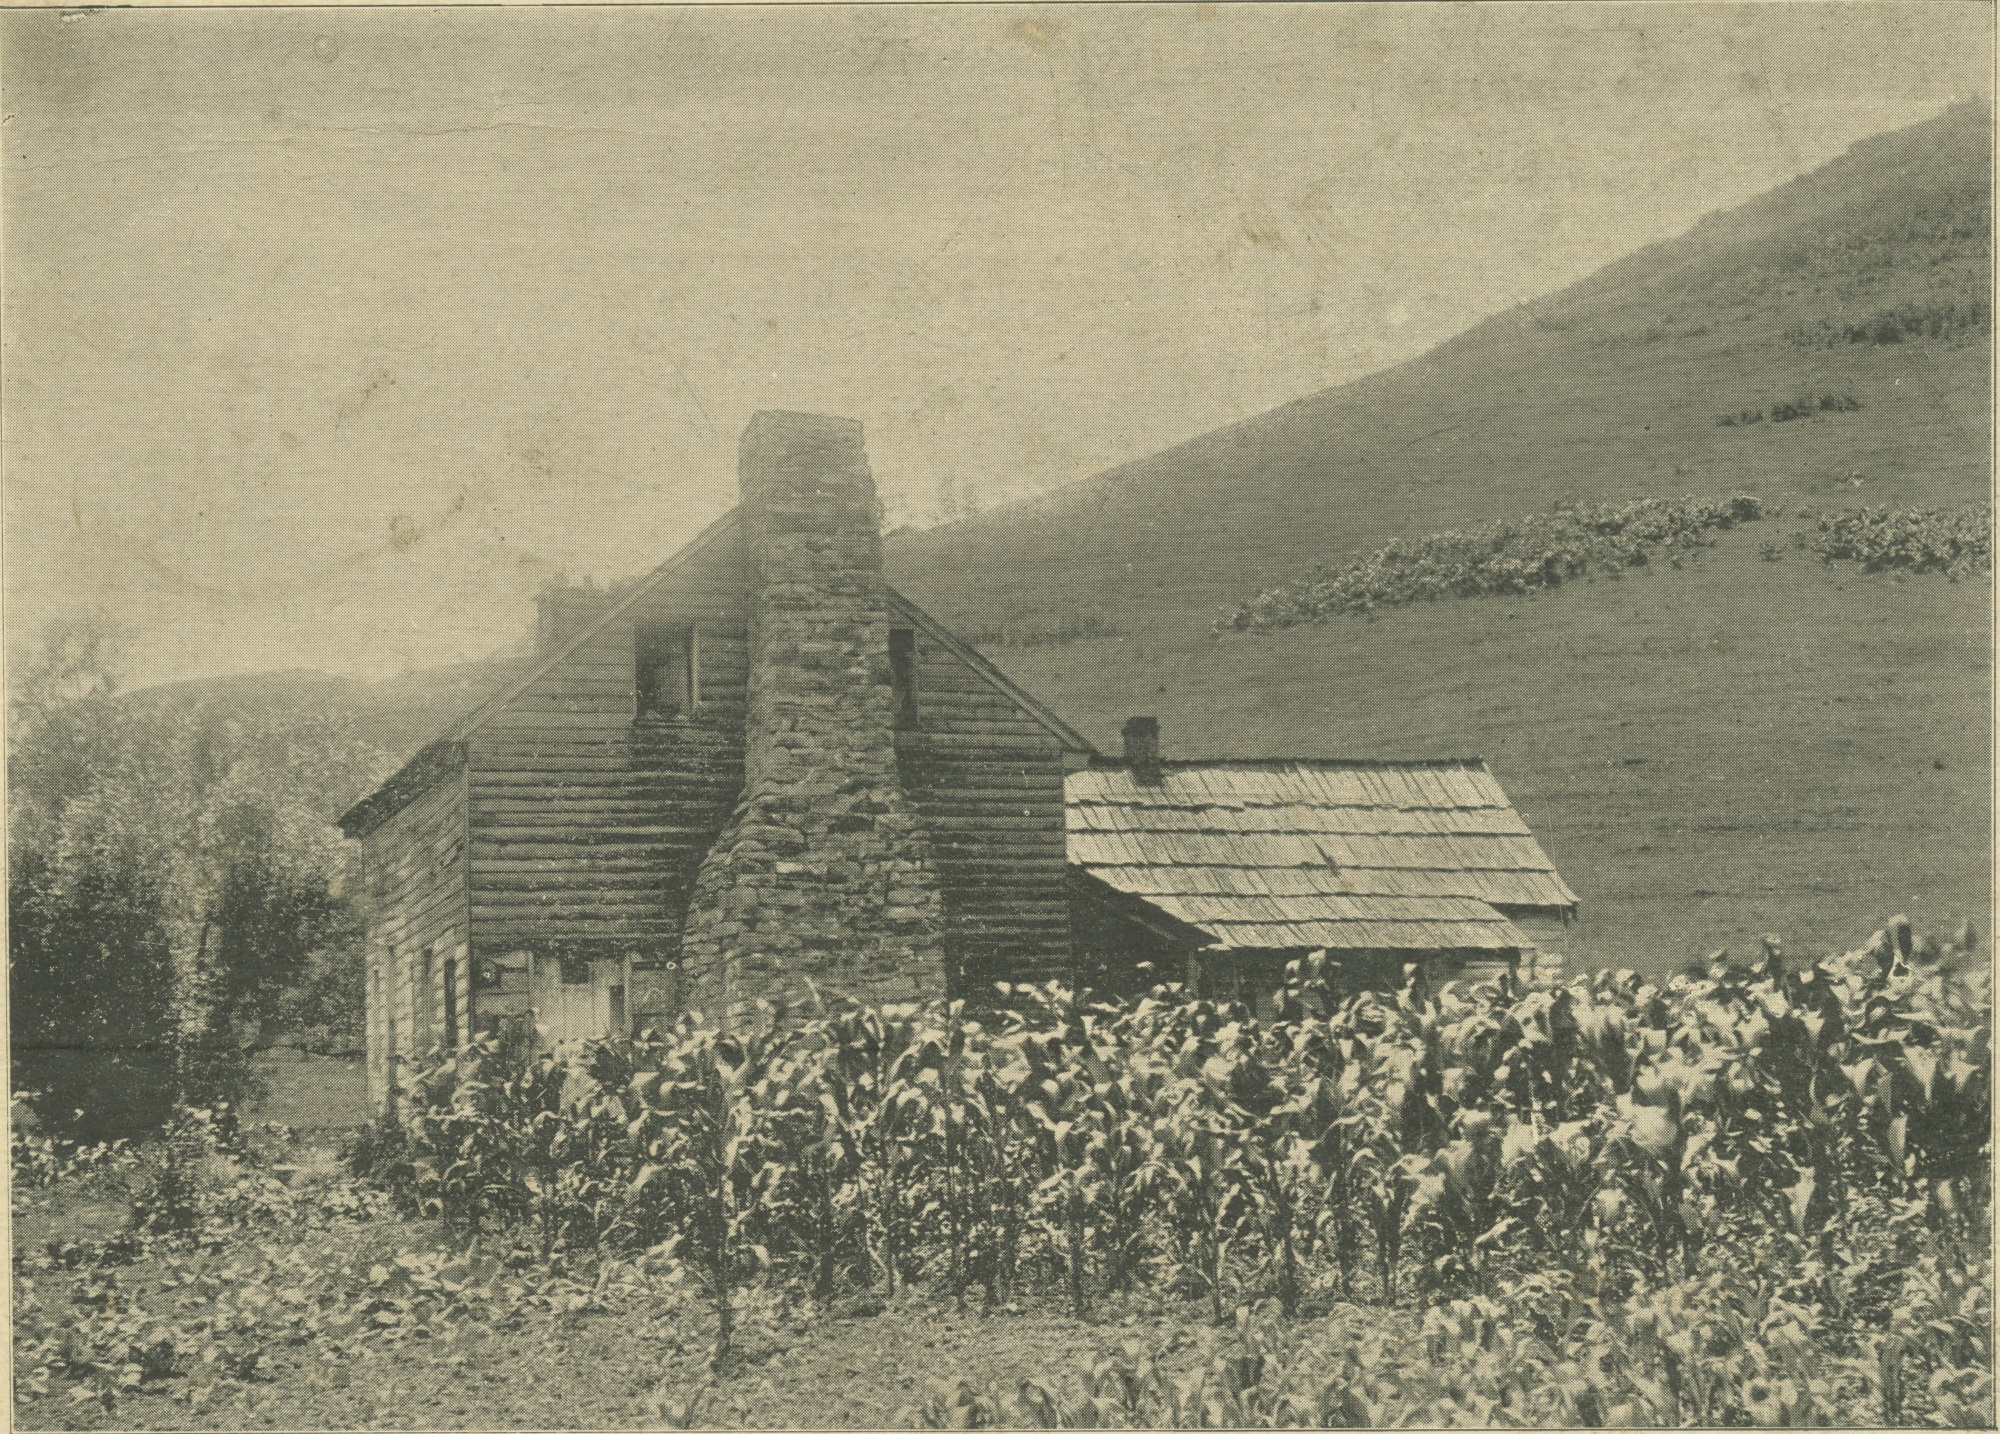 Photograph of Elizabeth Russell's cabin taken in 1896 (detail from Broadside 1896.F87 FF), courtesy of the Library of Virginia, Visual Studies Collection.